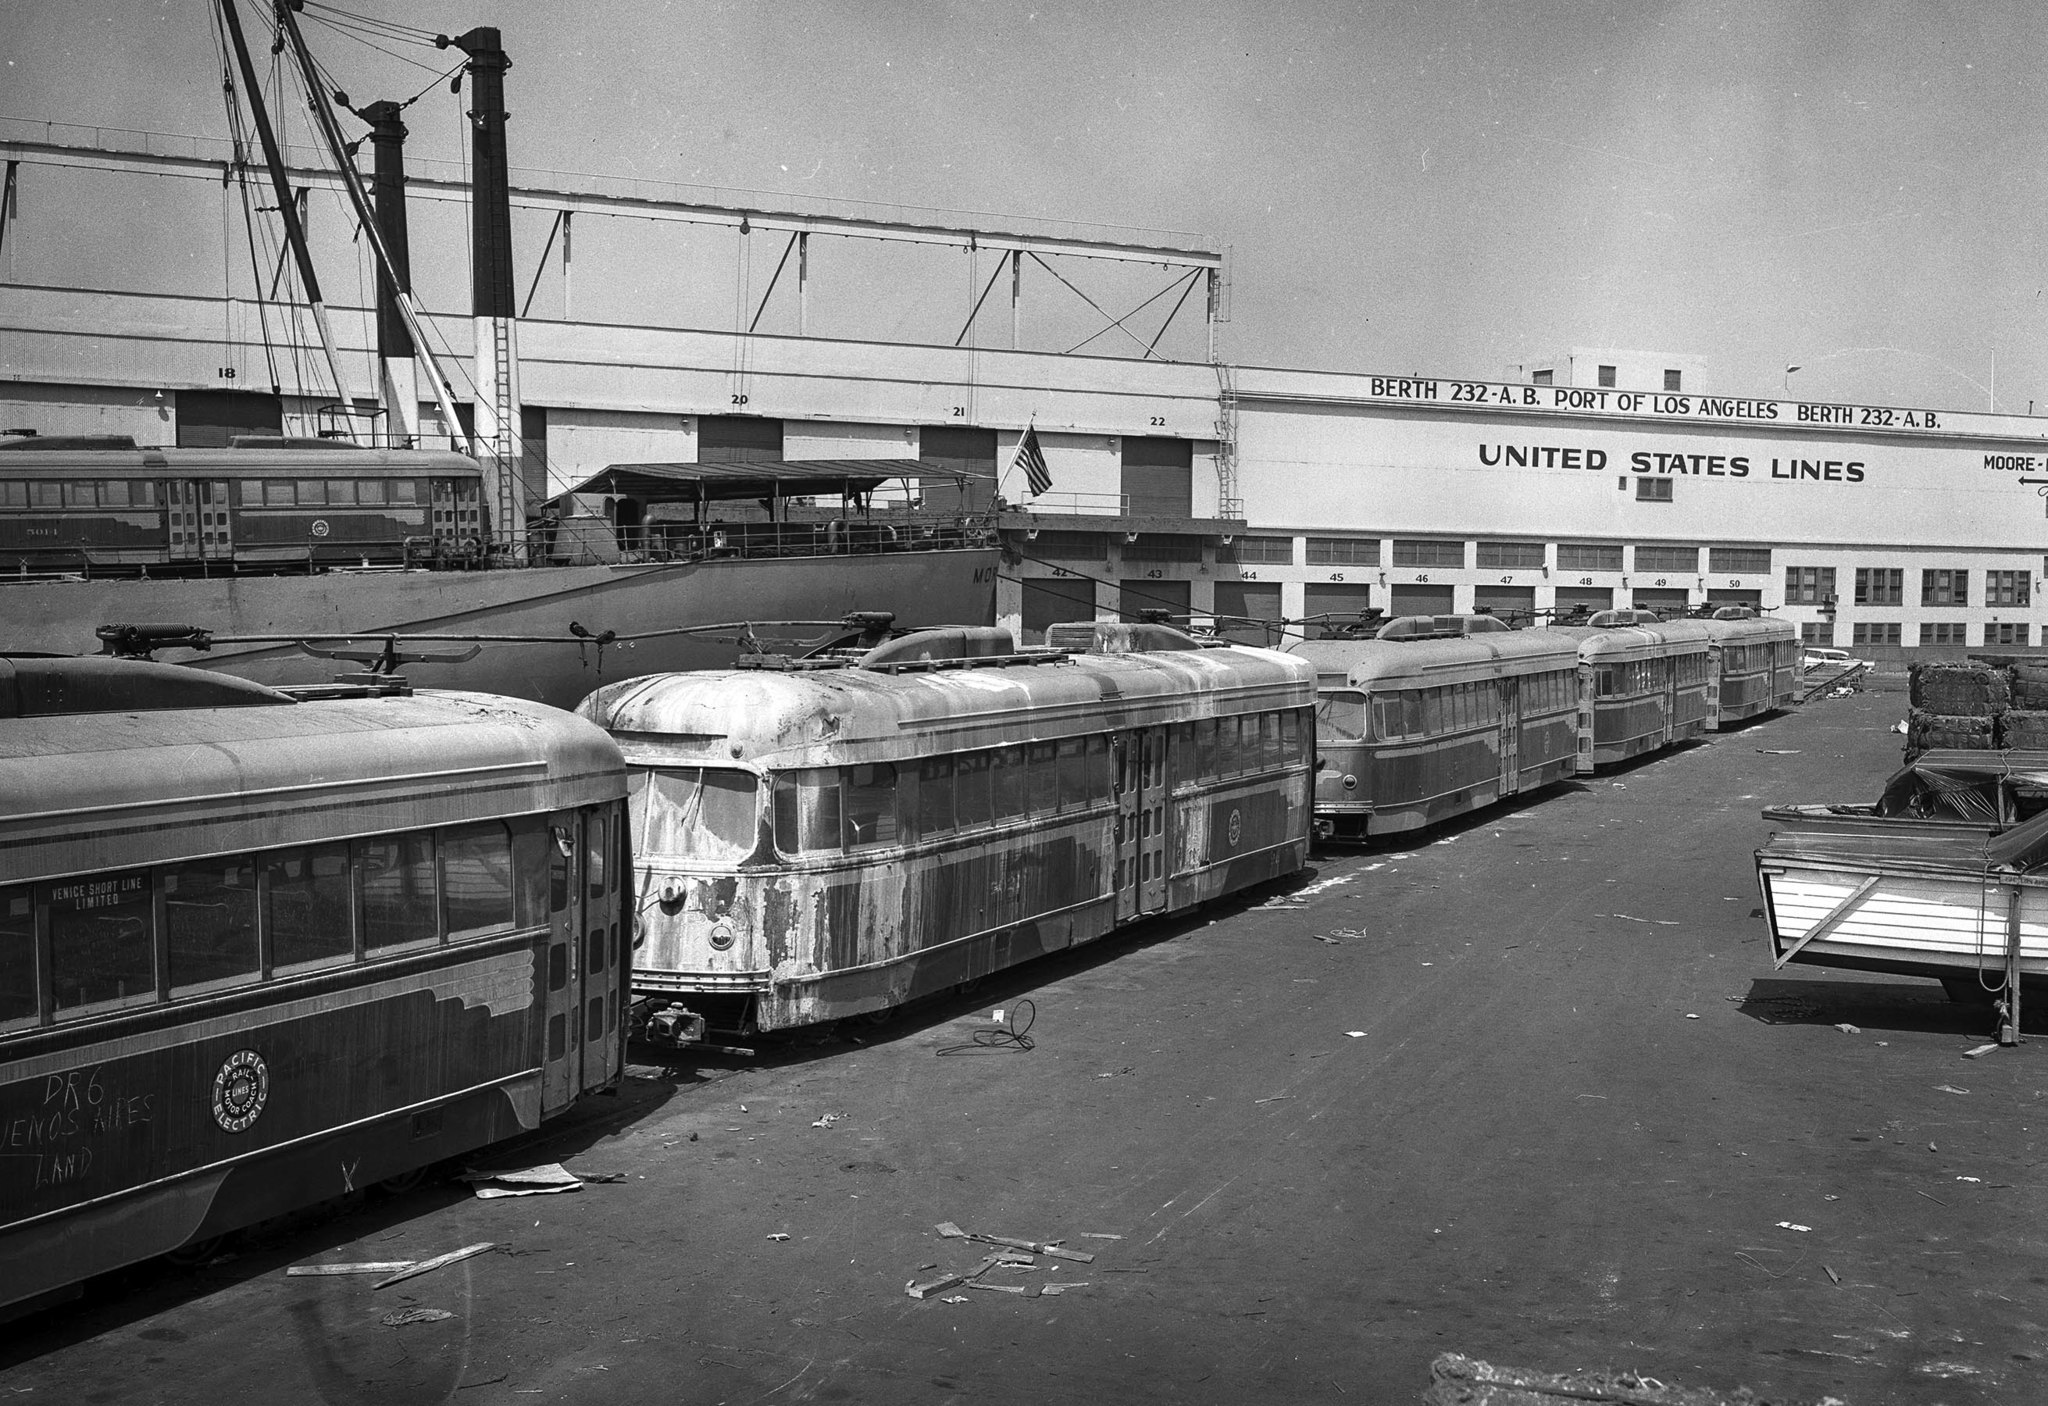 Sep. 6, 1959: Old Pacific Electric streetcars sit at Berth 232 on Terminal Island waiting to be load